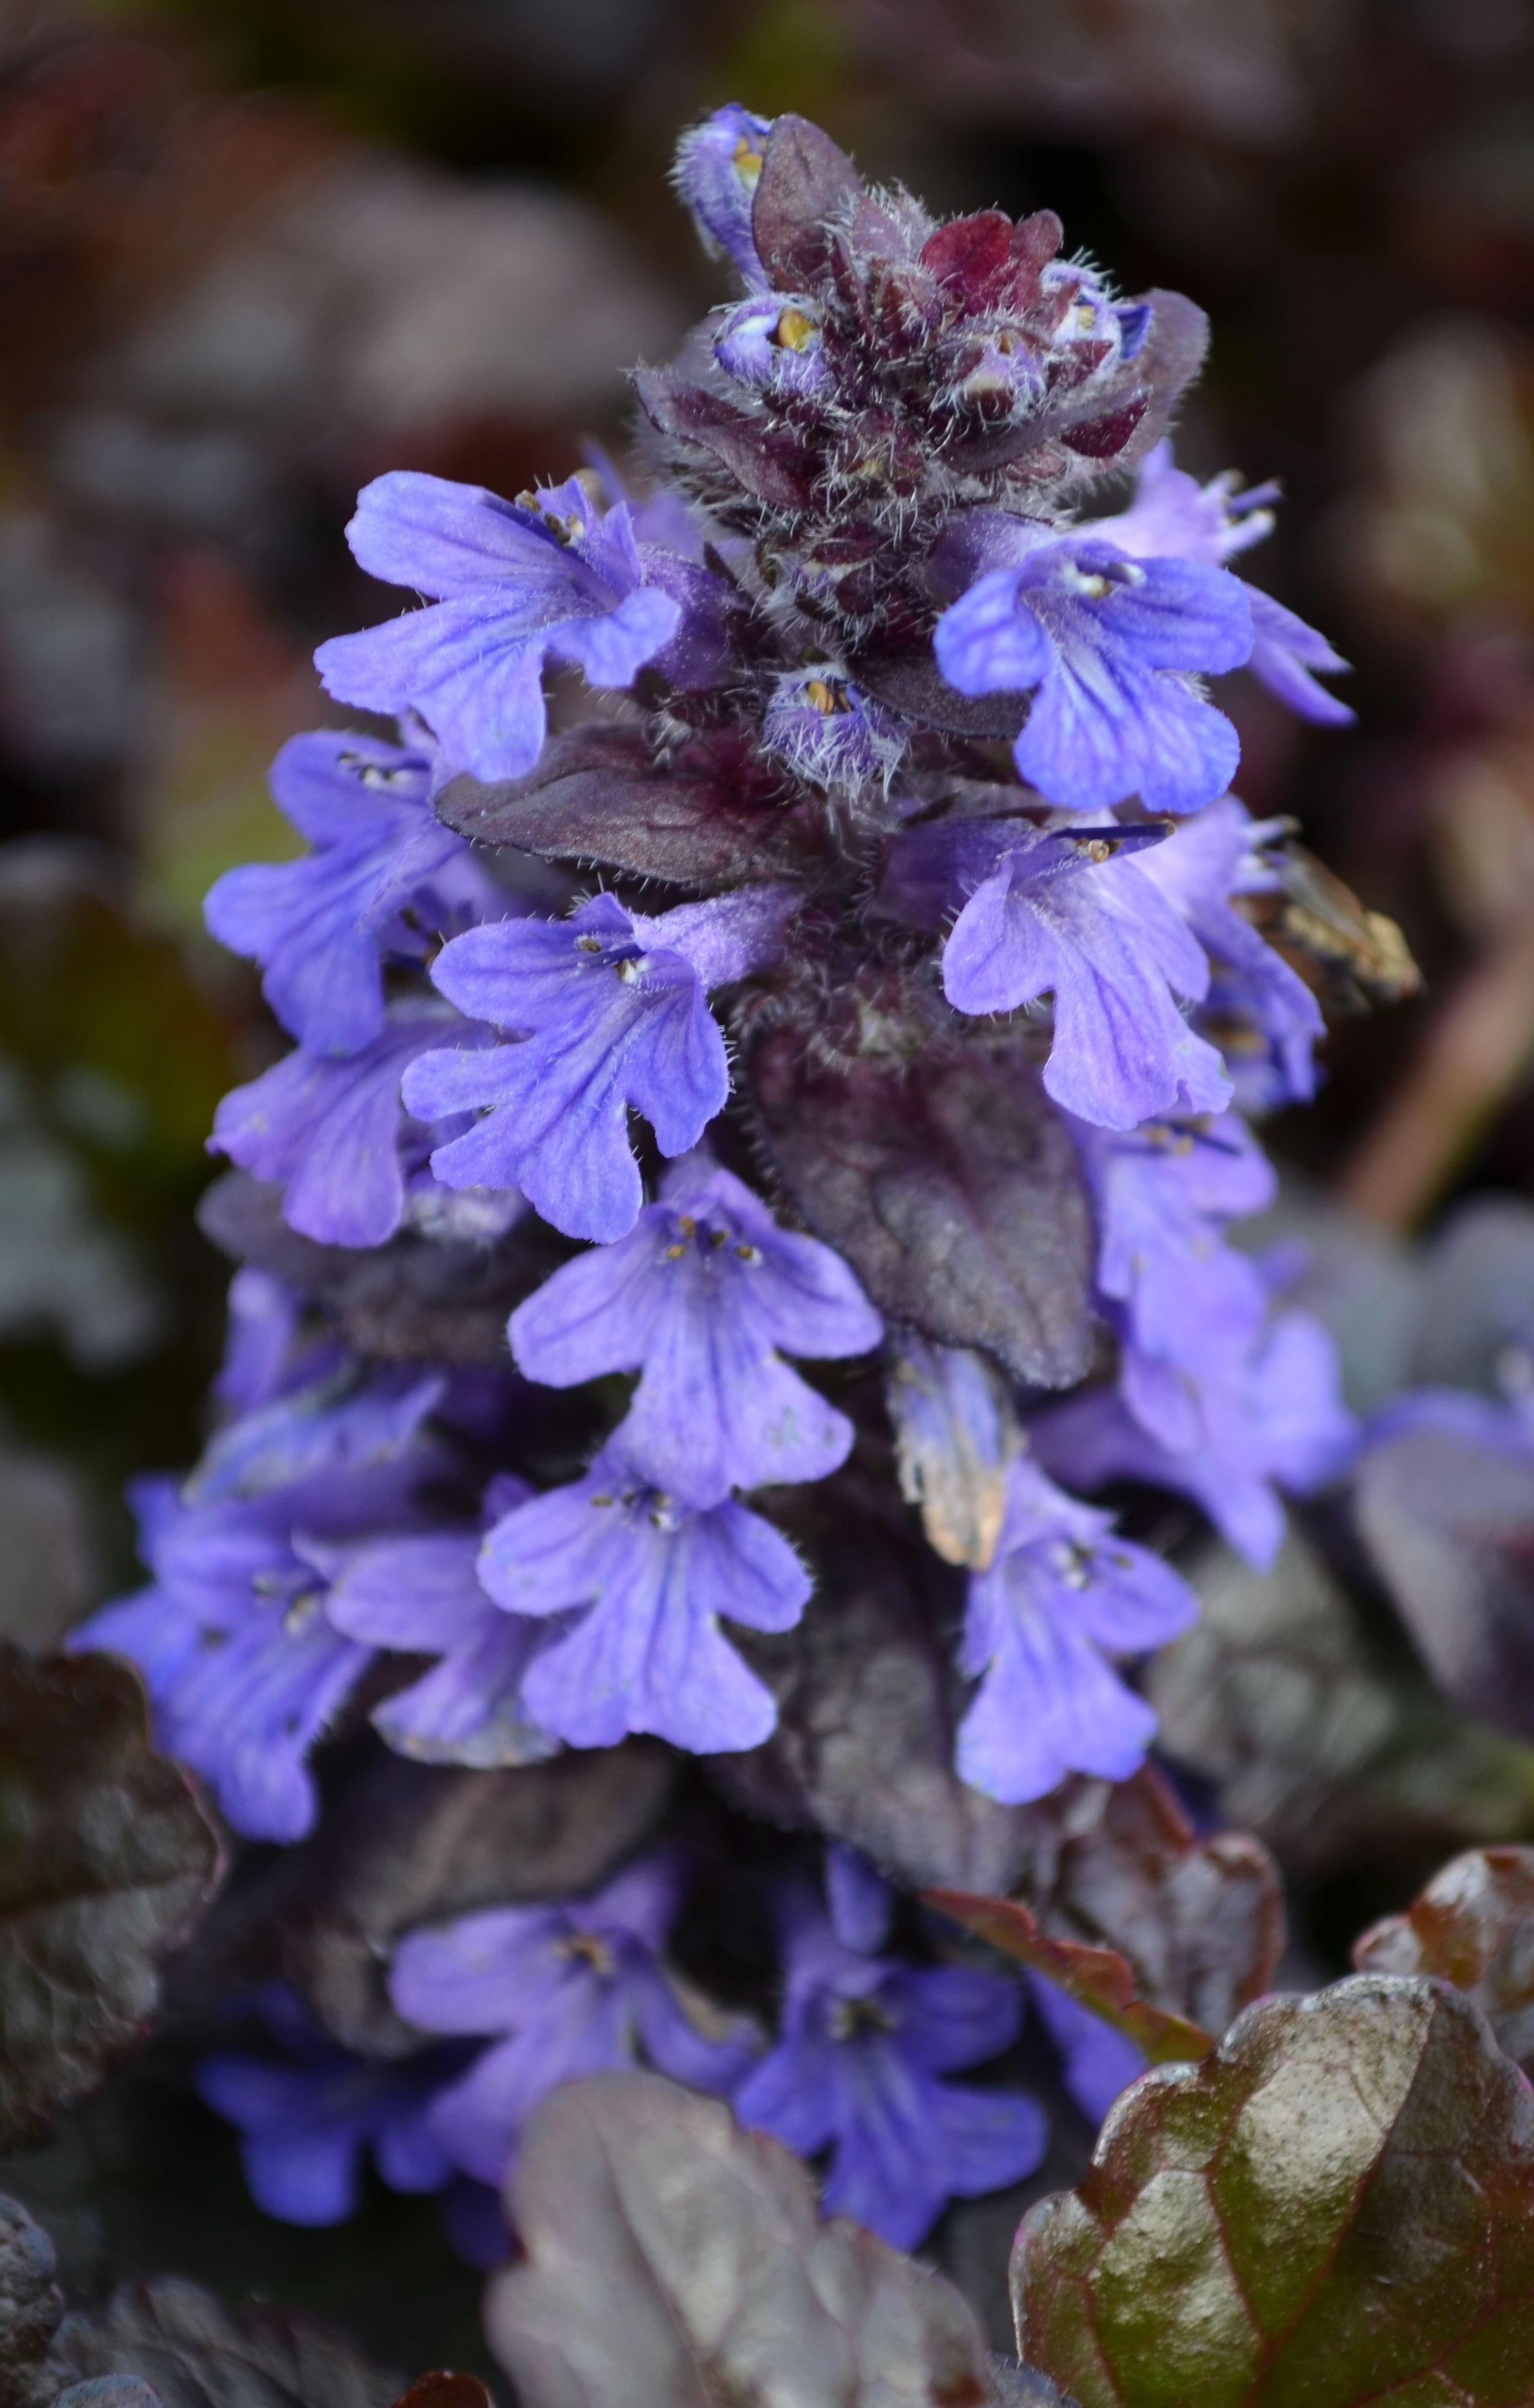 The Black Scallop Ajuga Is A Spreading Ground Covering Perennial